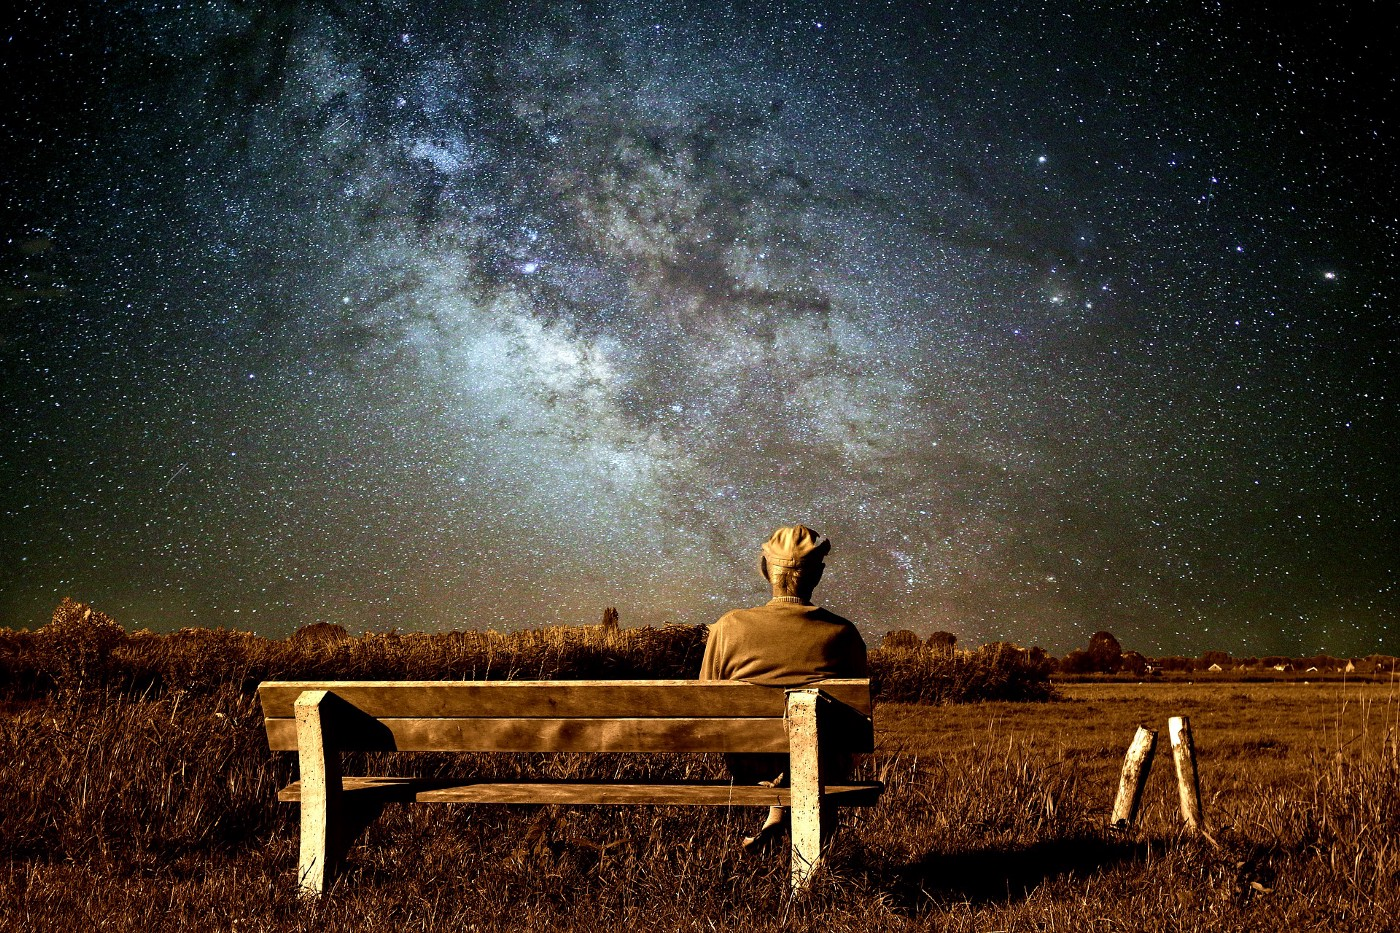 Old man on bench watching the galaxy.